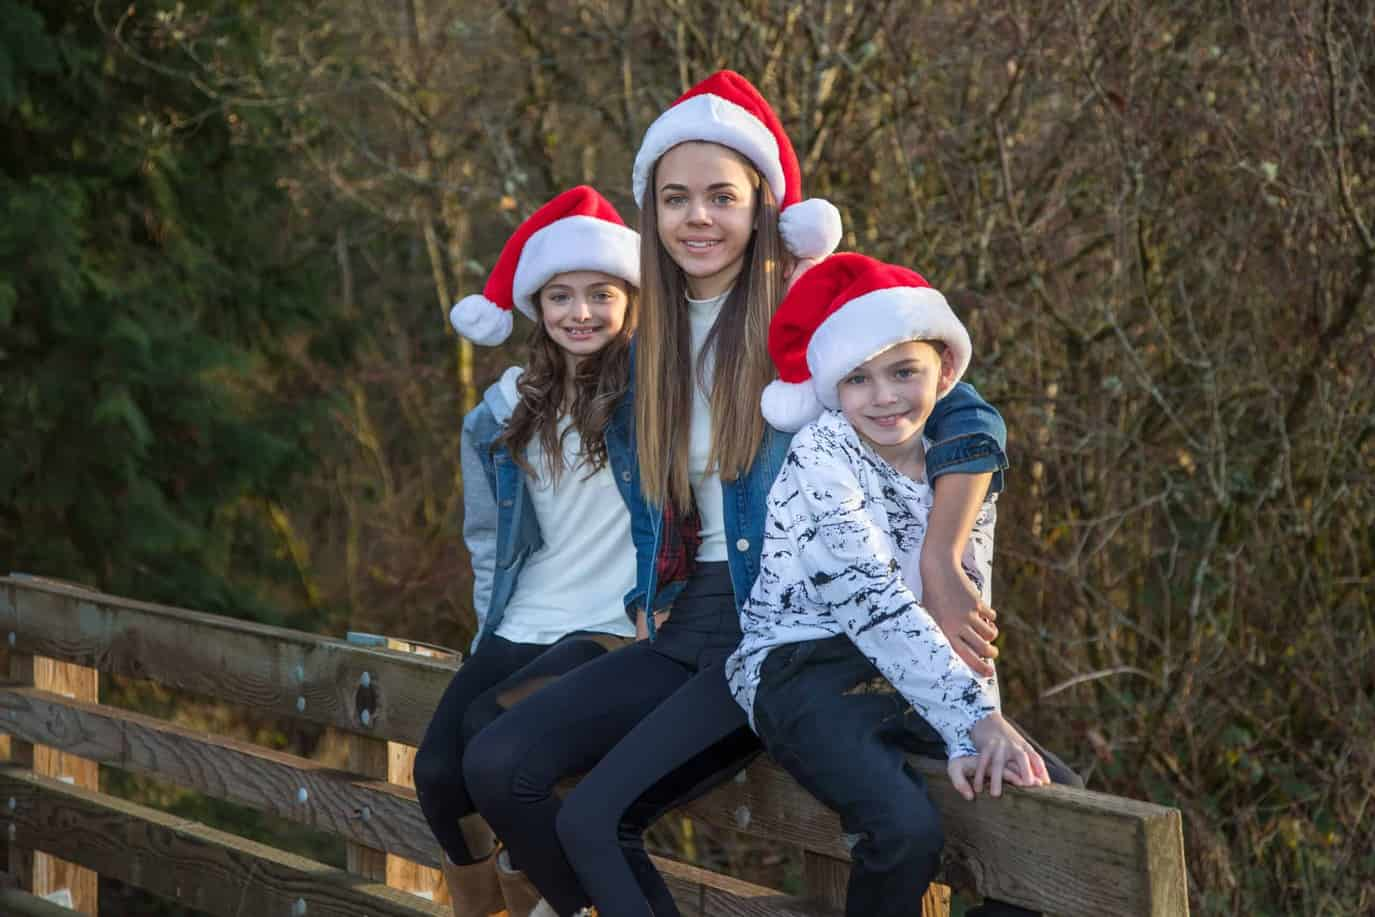 Another Family Photo Shoot in Bonney Lake